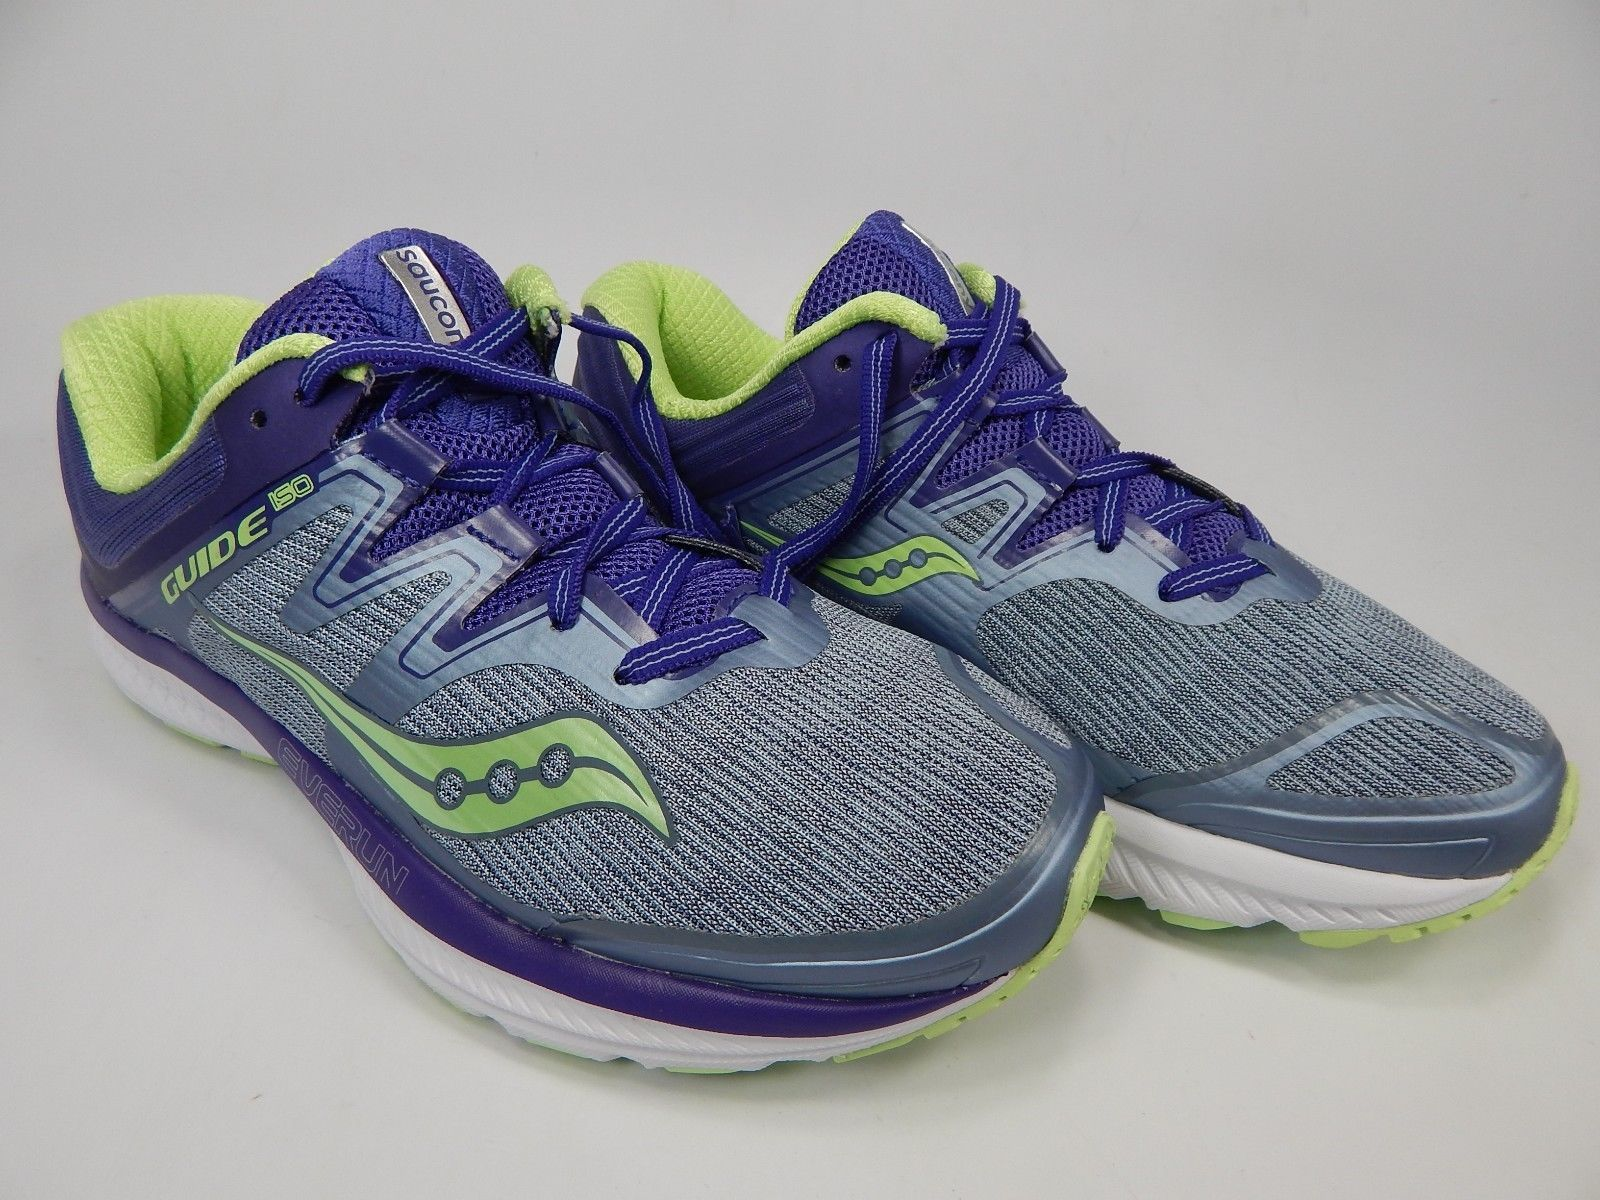 Saucony Guide ISO Size US 9 D (W) WIDE EU 40.5 Women's Running Shoes S10416-1